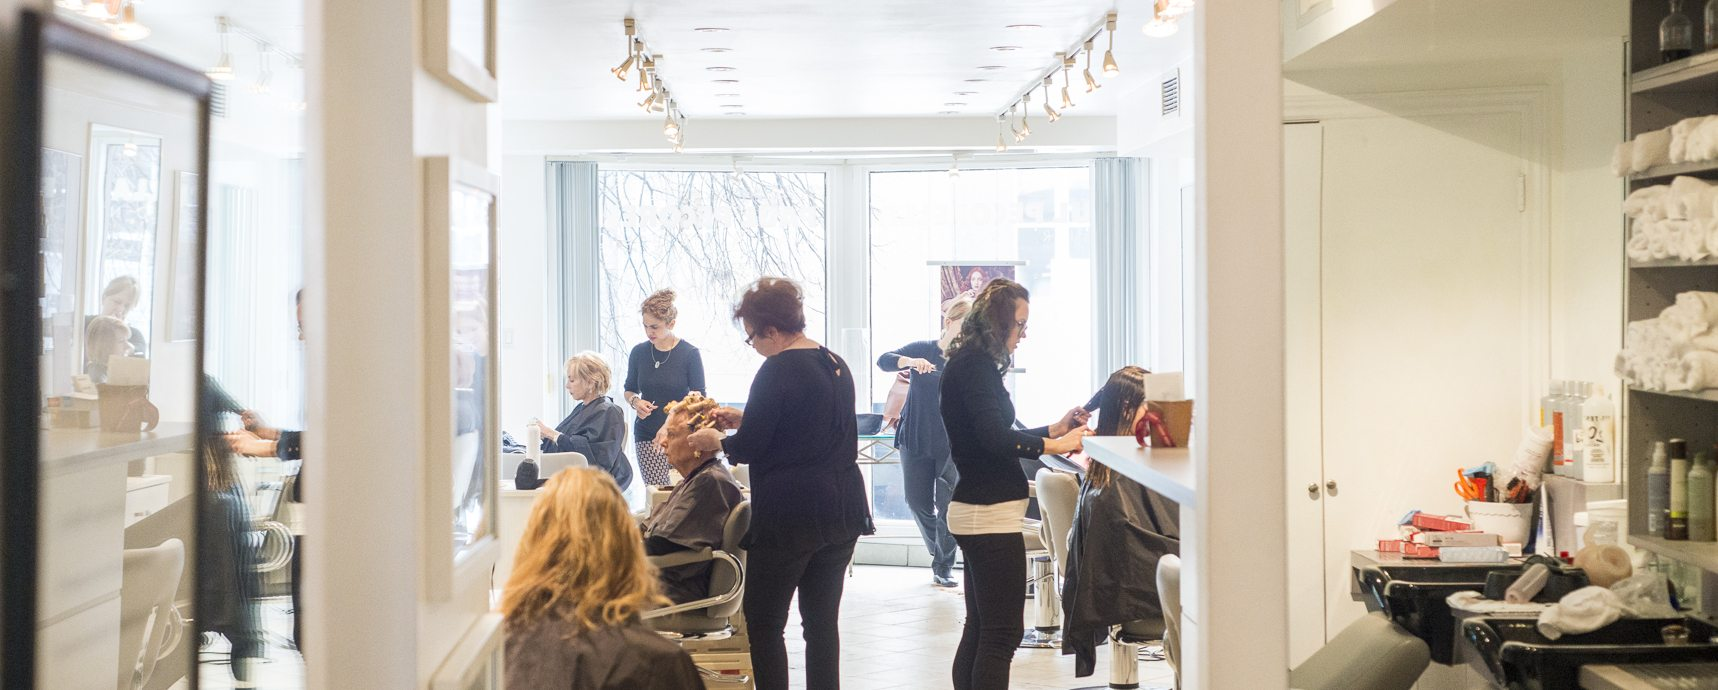 Paul Pecorella Hair Salon & Spa Celebrates Their 35-Year Anniversary in Bloor-Yorkville